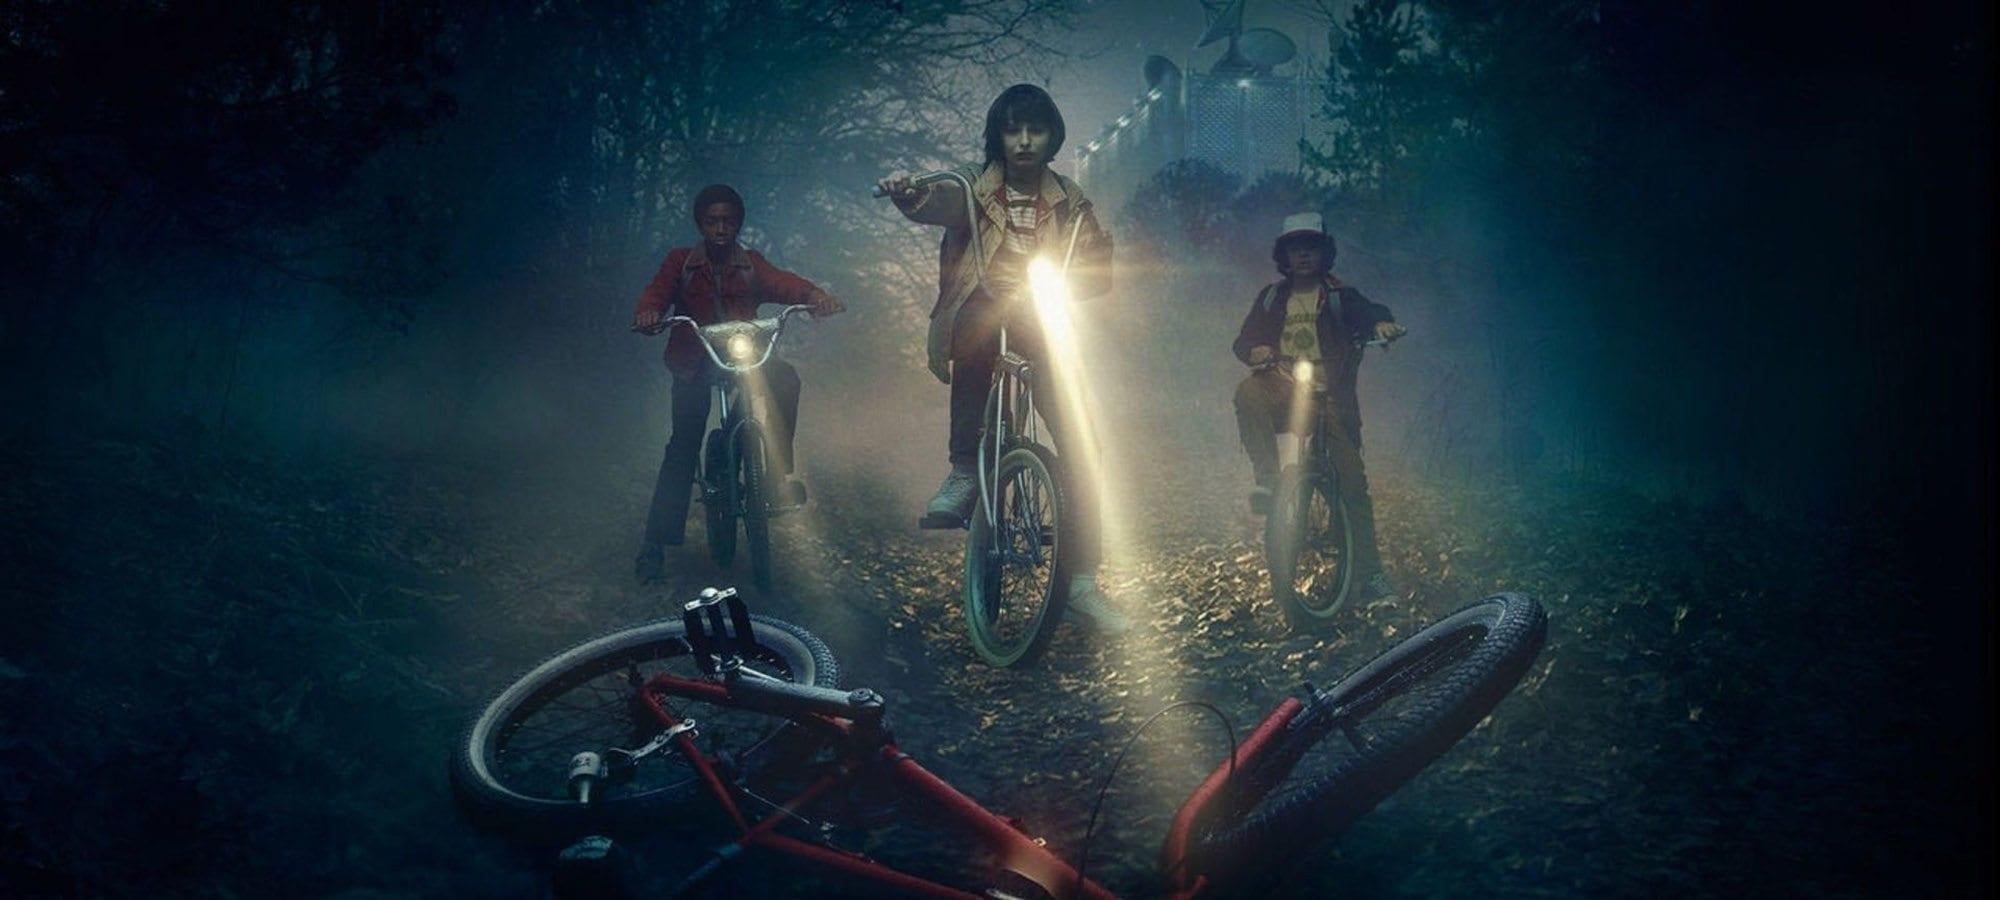 Let's take a look at some of the other on-screen projects the kids from Netflix's smash-hit show 'Stranger Things' are involved in.